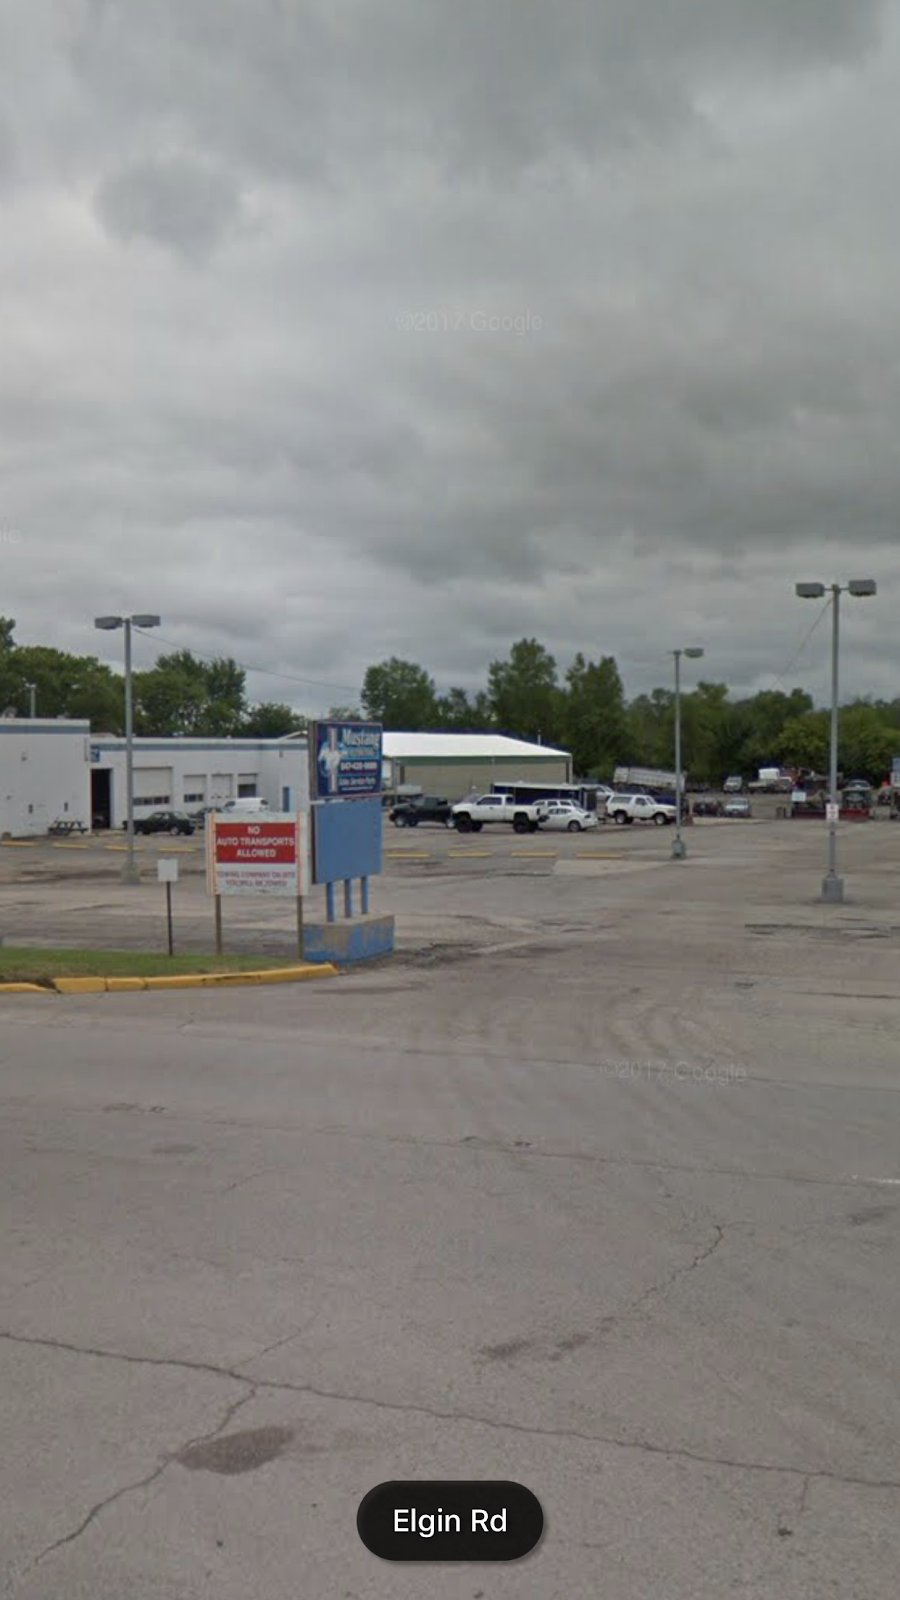 Anthony Electronics - car repair  | Photo 8 of 8 | Address: 15N272 IL-25, East Dundee, IL 60118, USA | Phone: (847) 815-9590